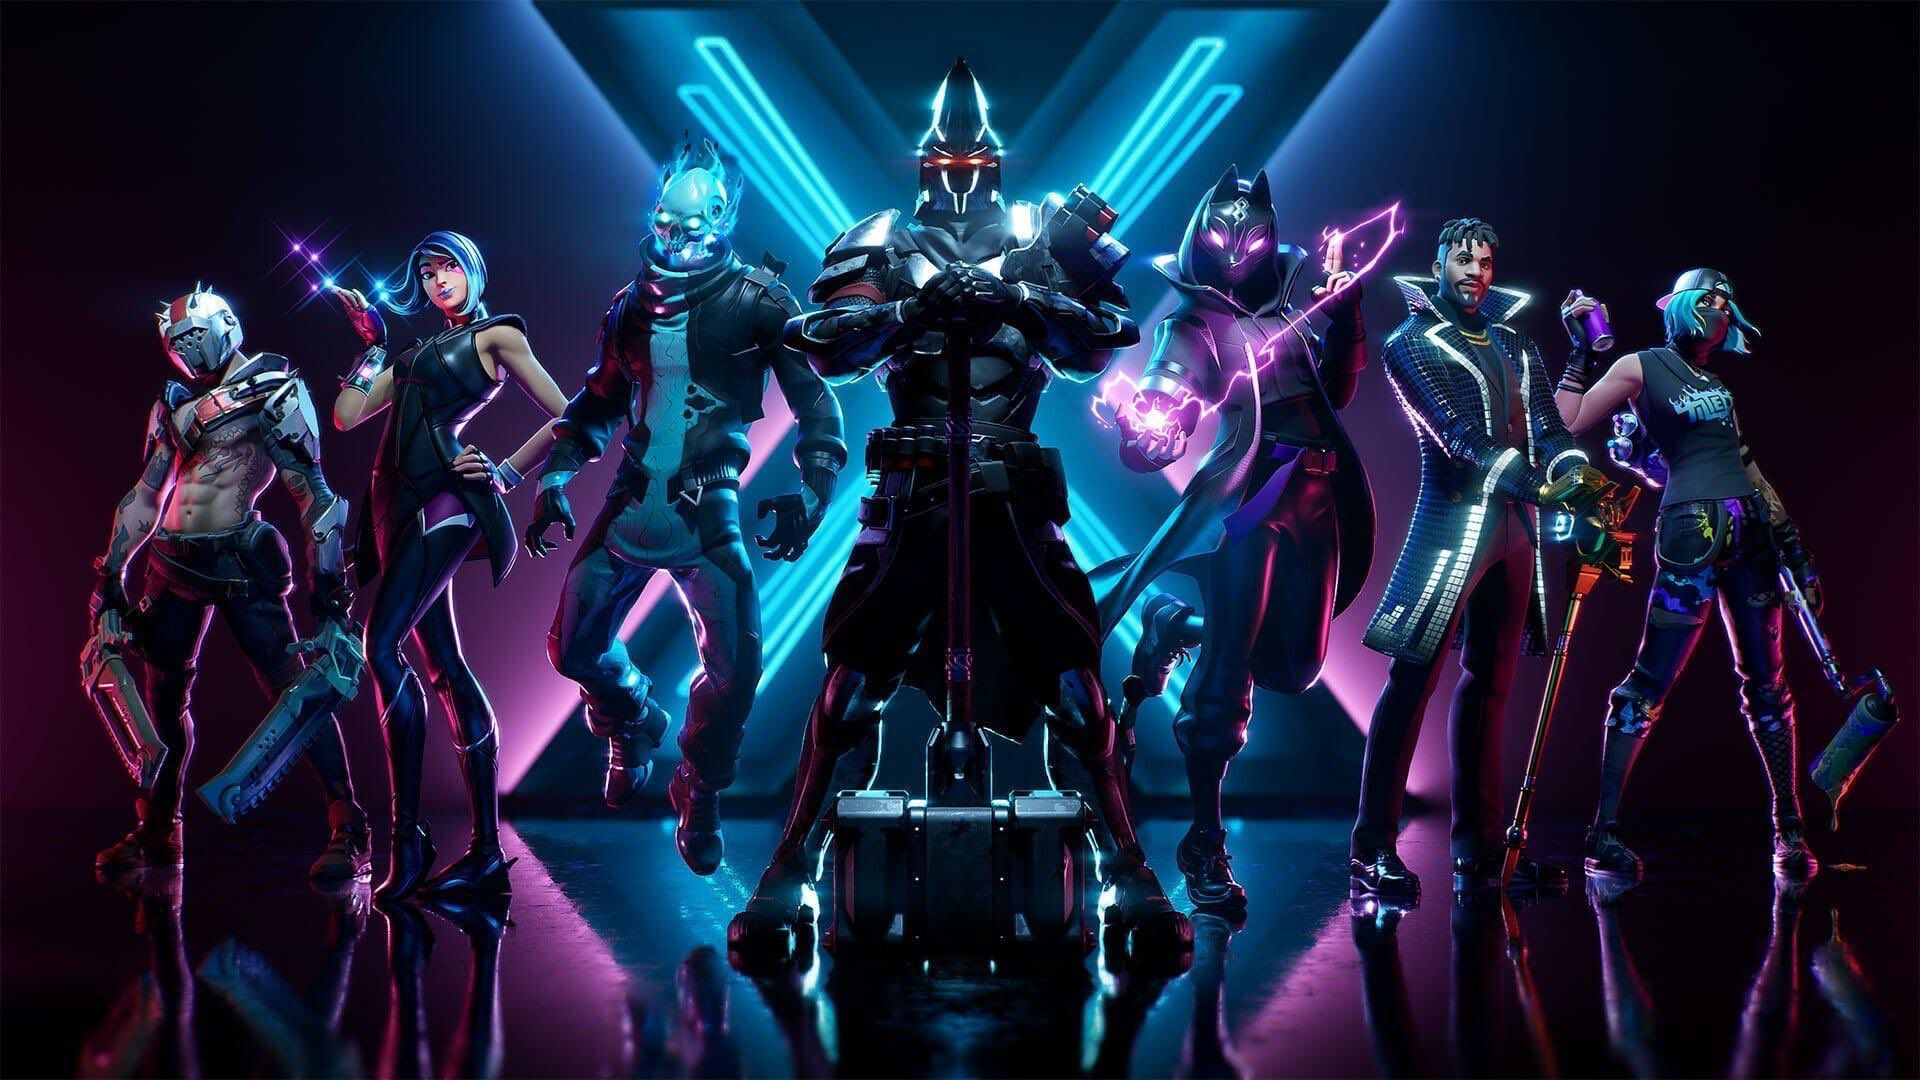 Fortnite Season X Battle Pass Tier 100 Ultima Knight All Skin Styles Heres All The Skin Styles For The Season X Tier 1 Fortnite Epic Games Epic Games Fortnite